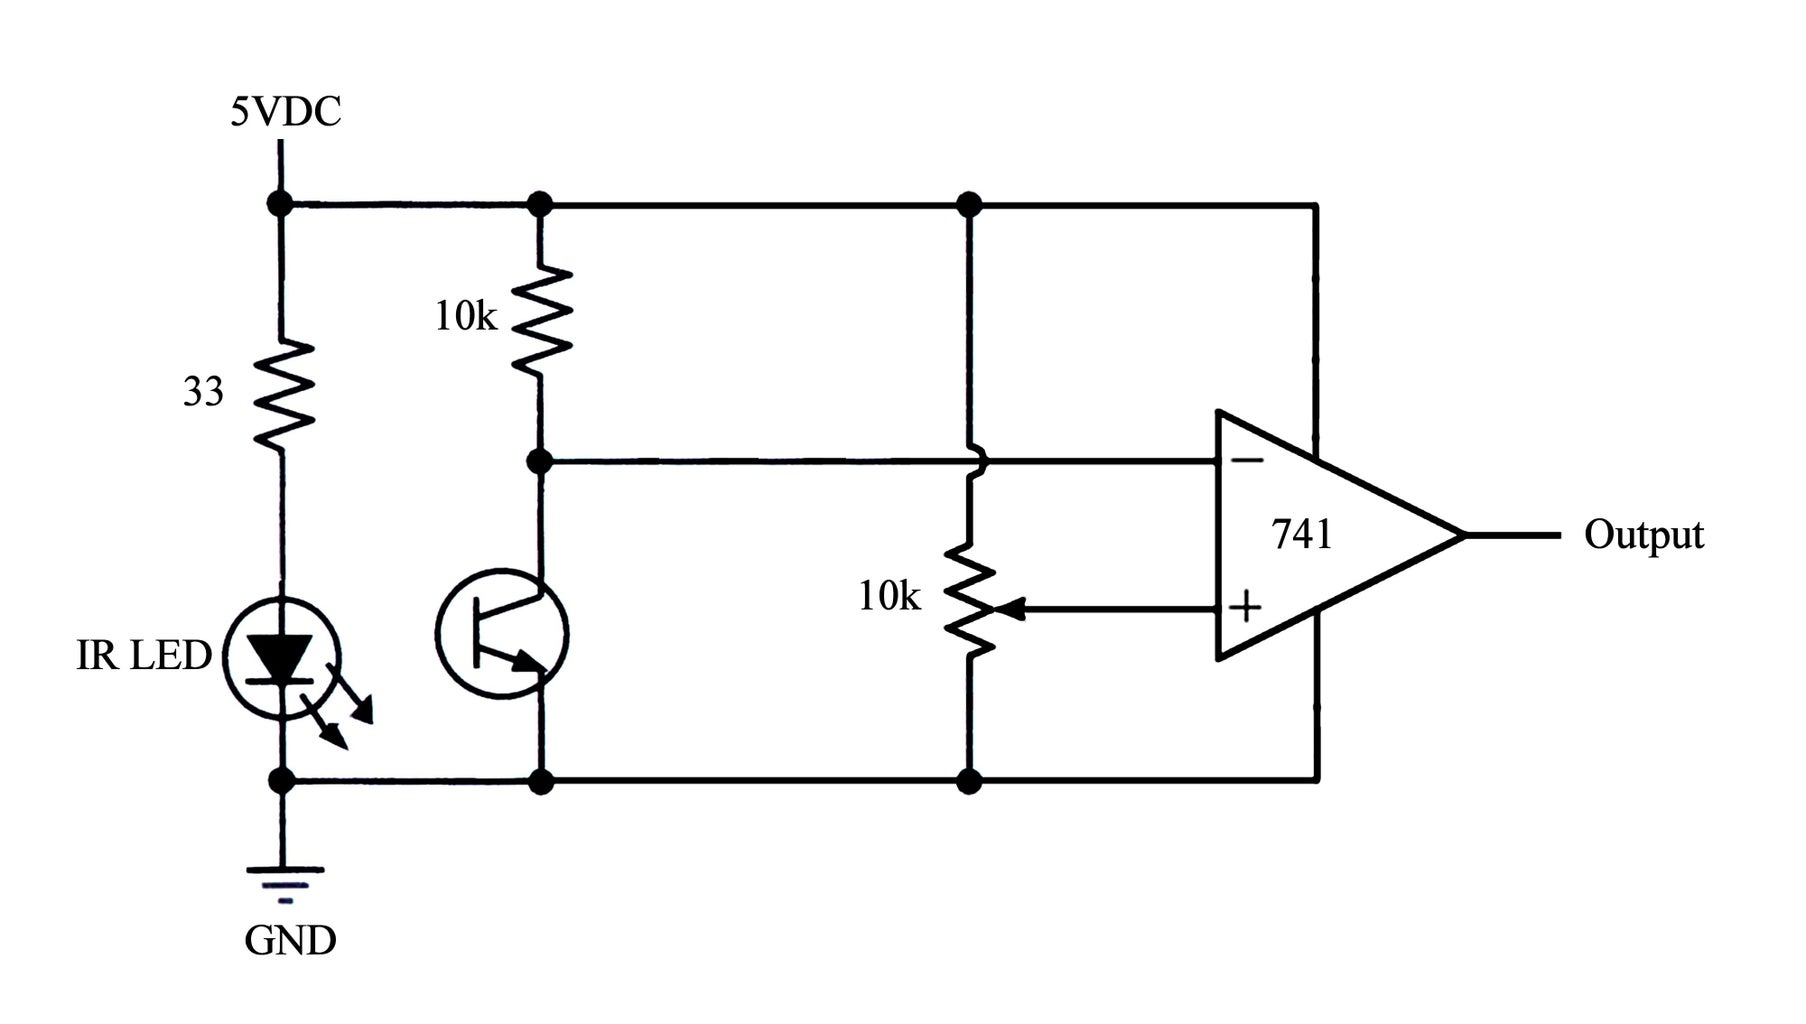 Signal Processing With an OP Amp